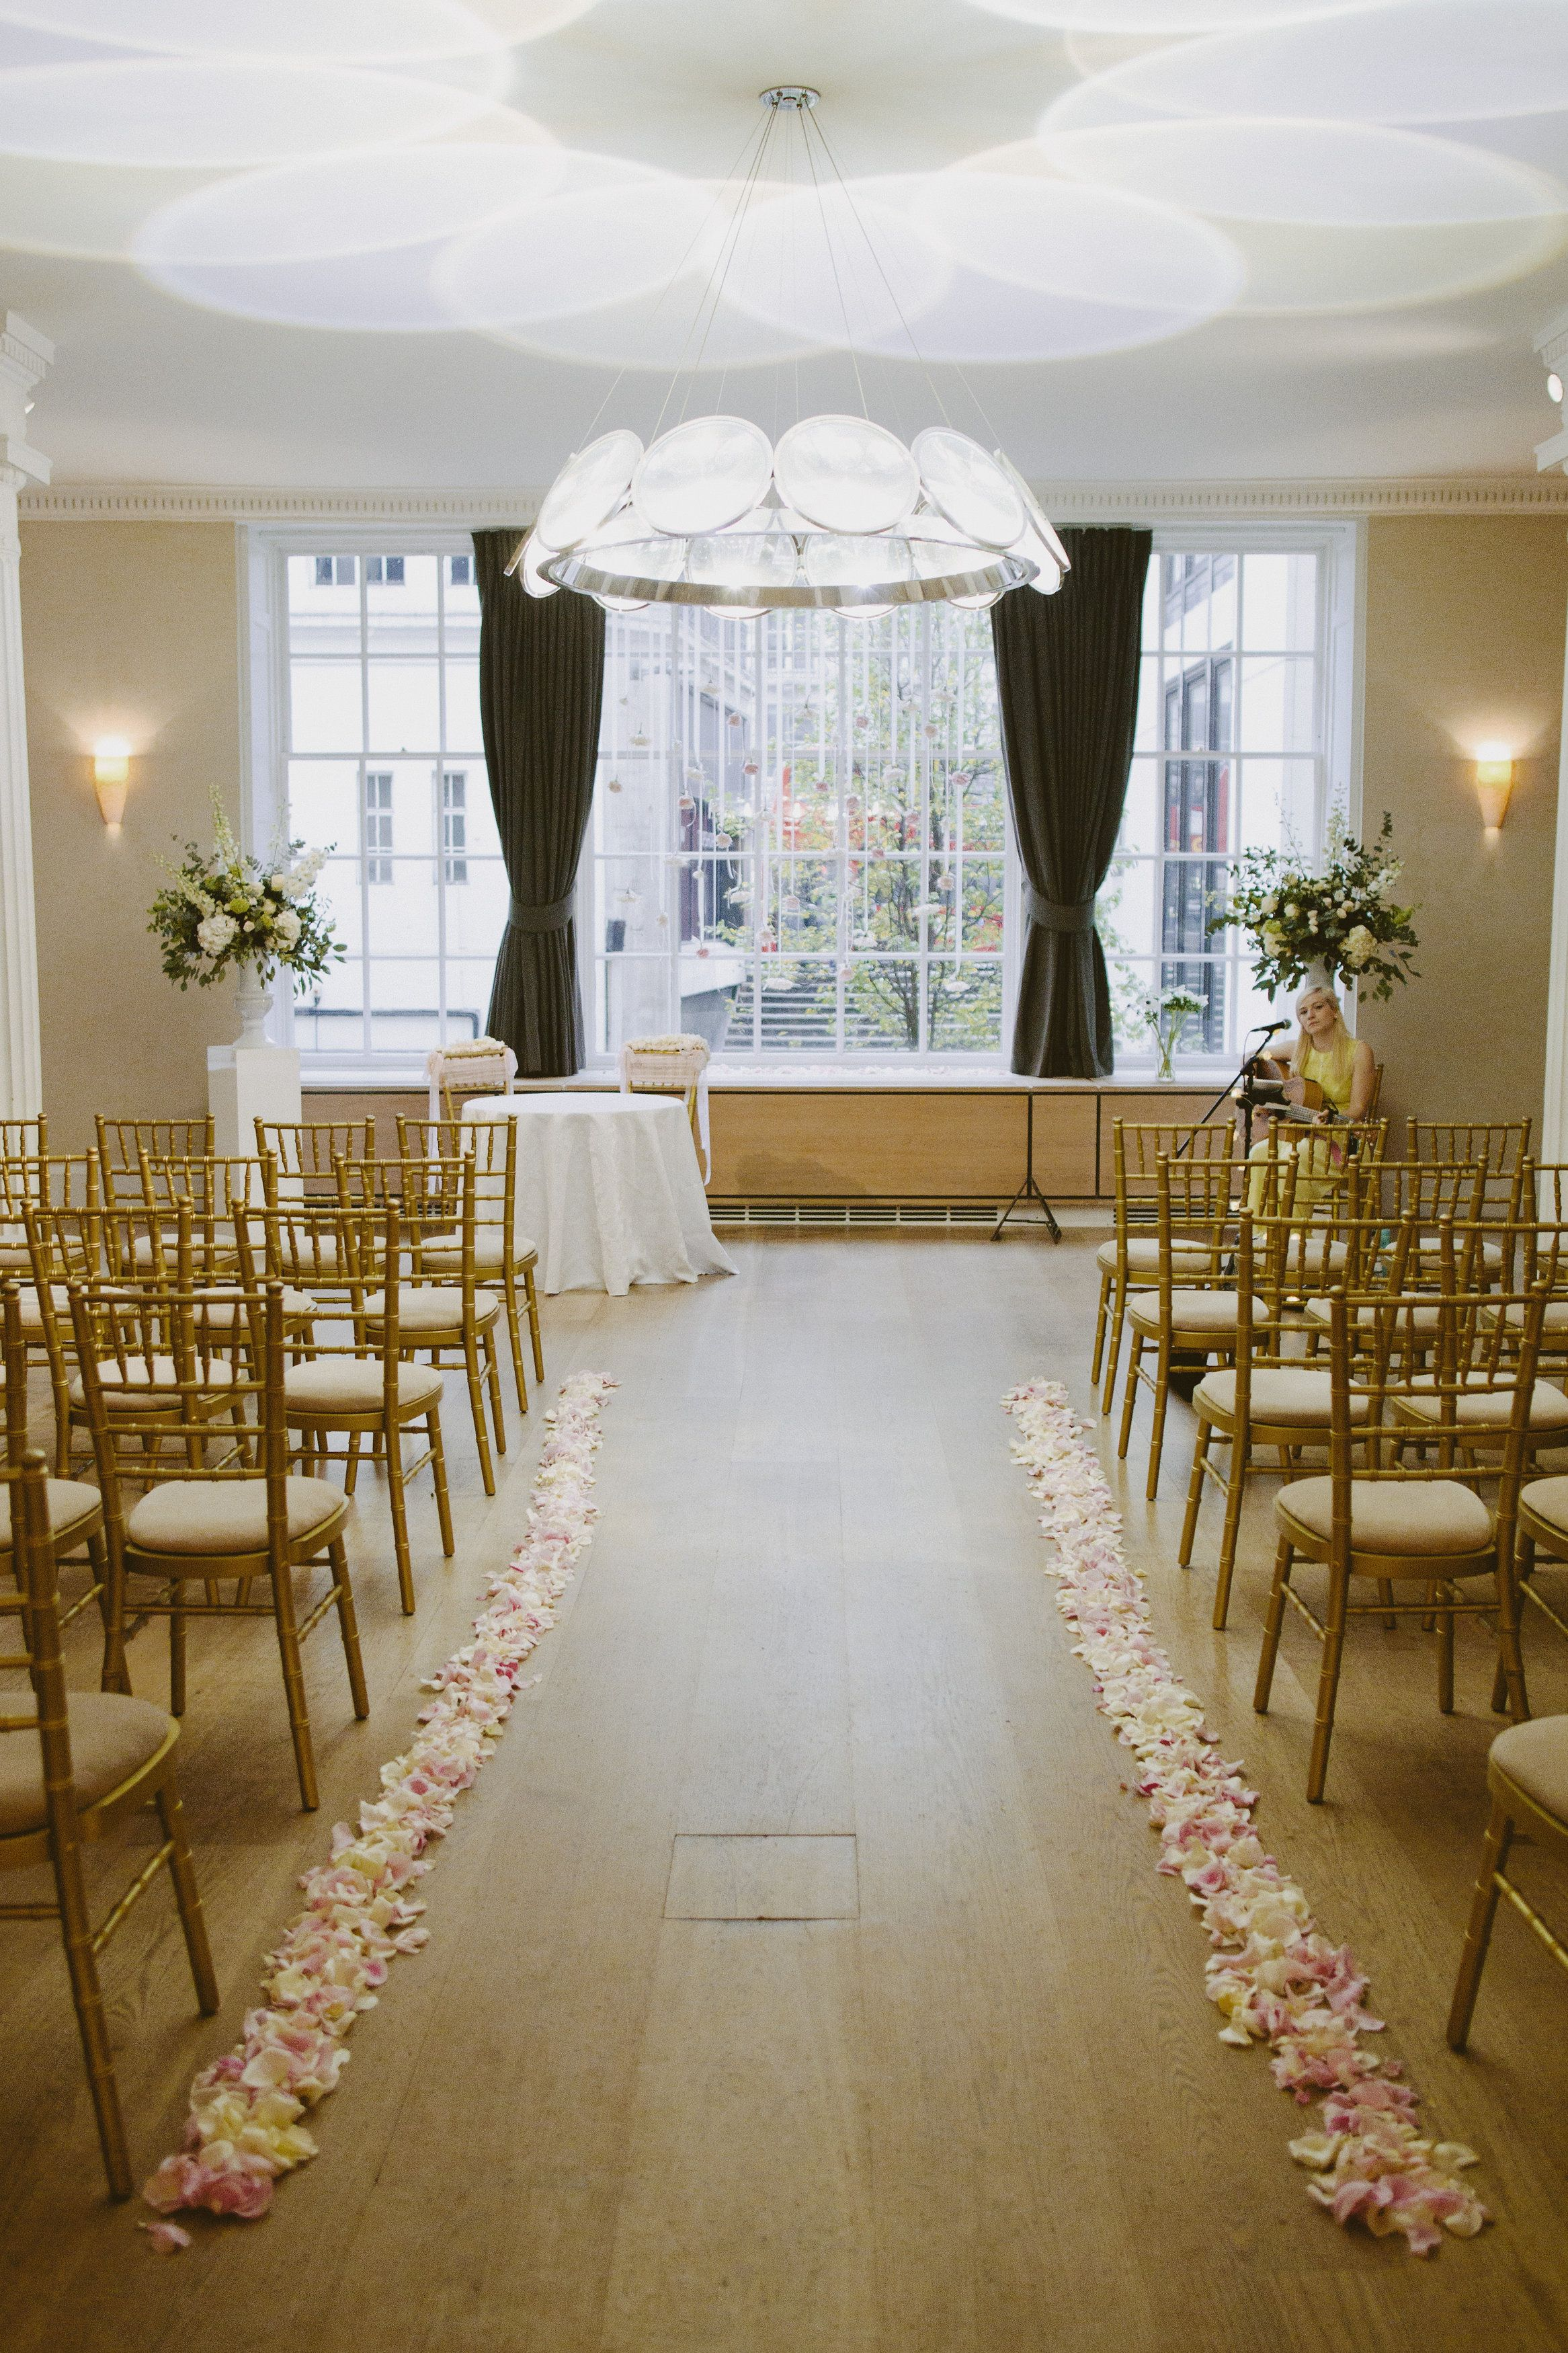 39+ Wedding ceremony only venues london ideas in 2021